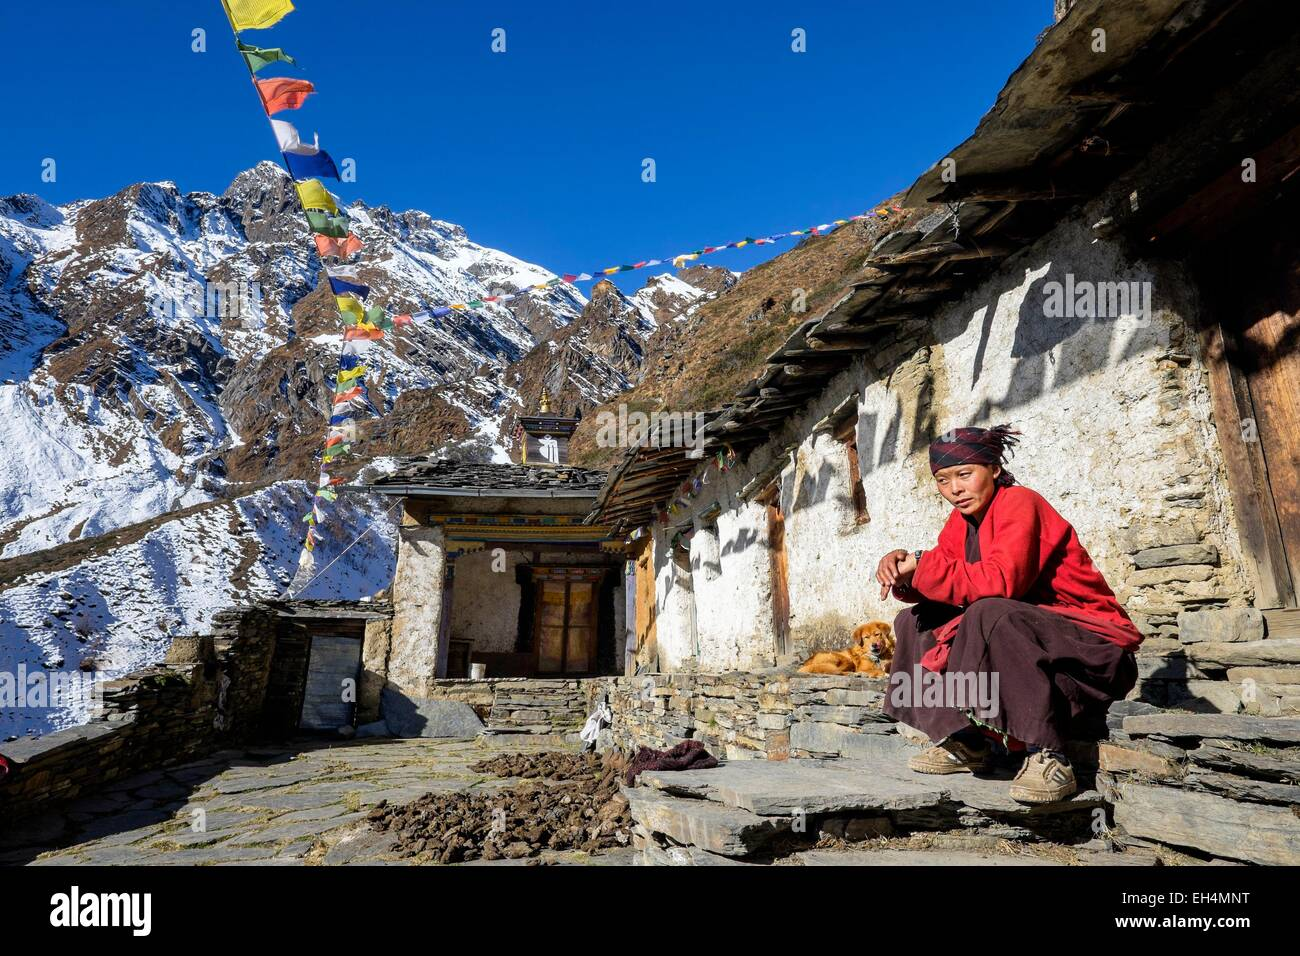 Nepal, Gandaki zone, Tsum valley trek, the 600 years old Dhephu Doma nunnery (alt.3700m), Chadong is one of the - Stock Image